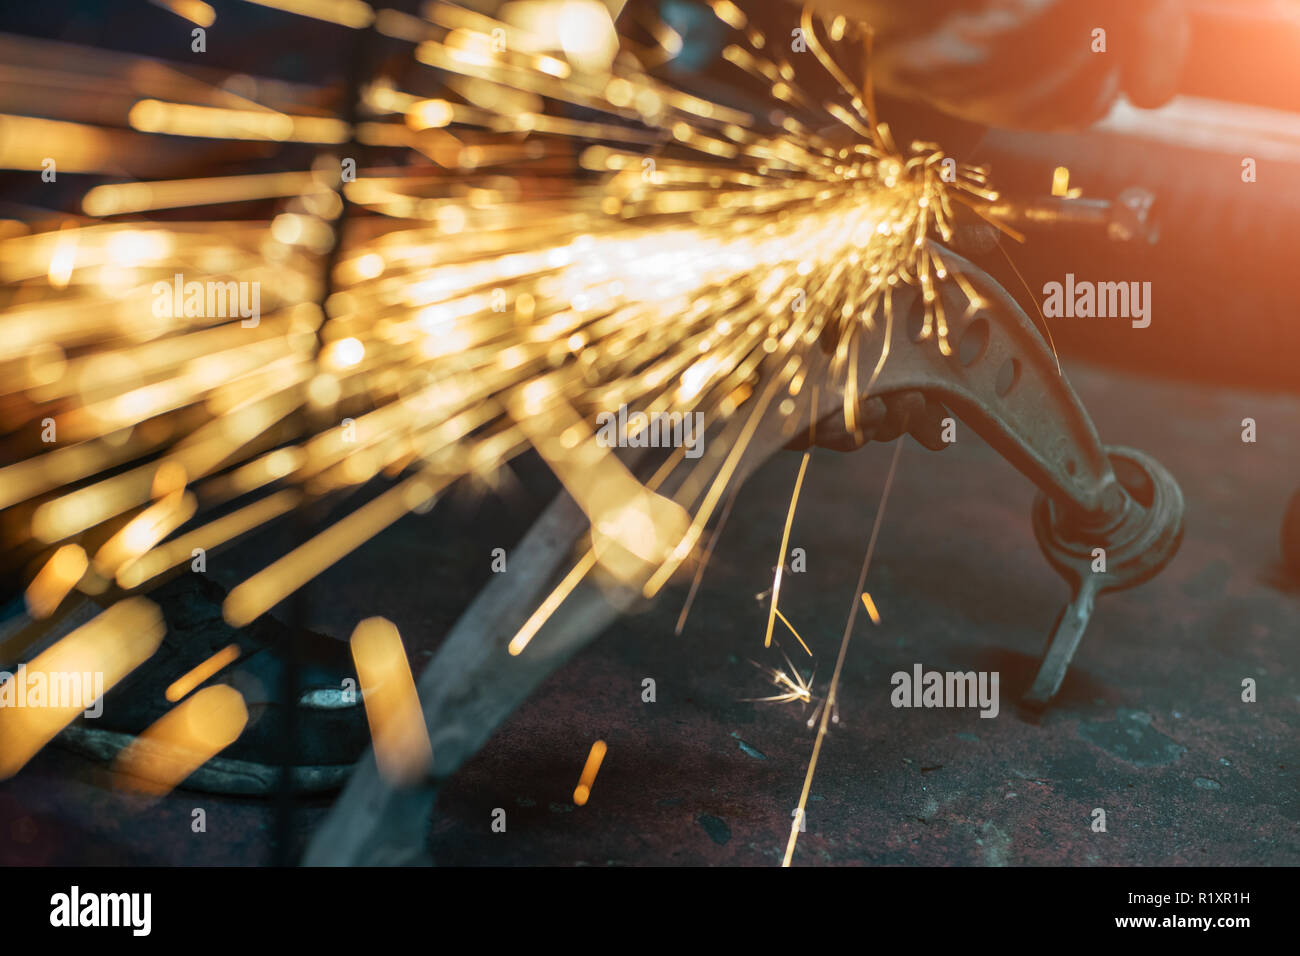 Proffecional worker repair car part with angle grinder. Many sparks on background. - Stock Image